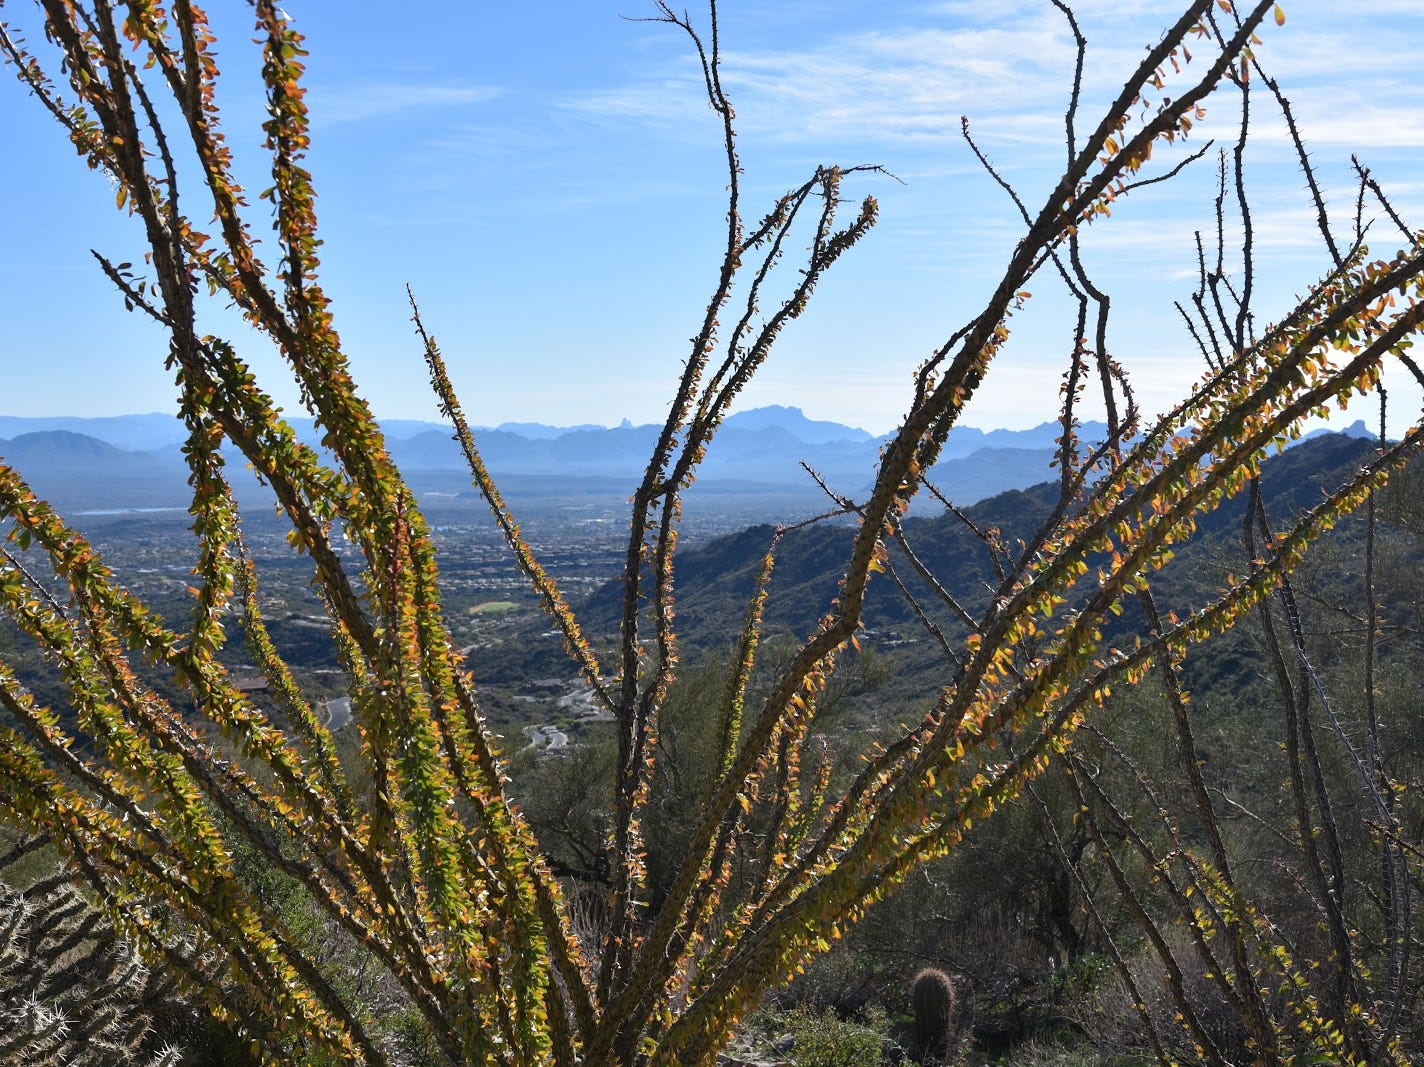 Ocotillo frames Superstition Wilderness peaks views from the Fountain Hills McDowell Mountain Preserve.